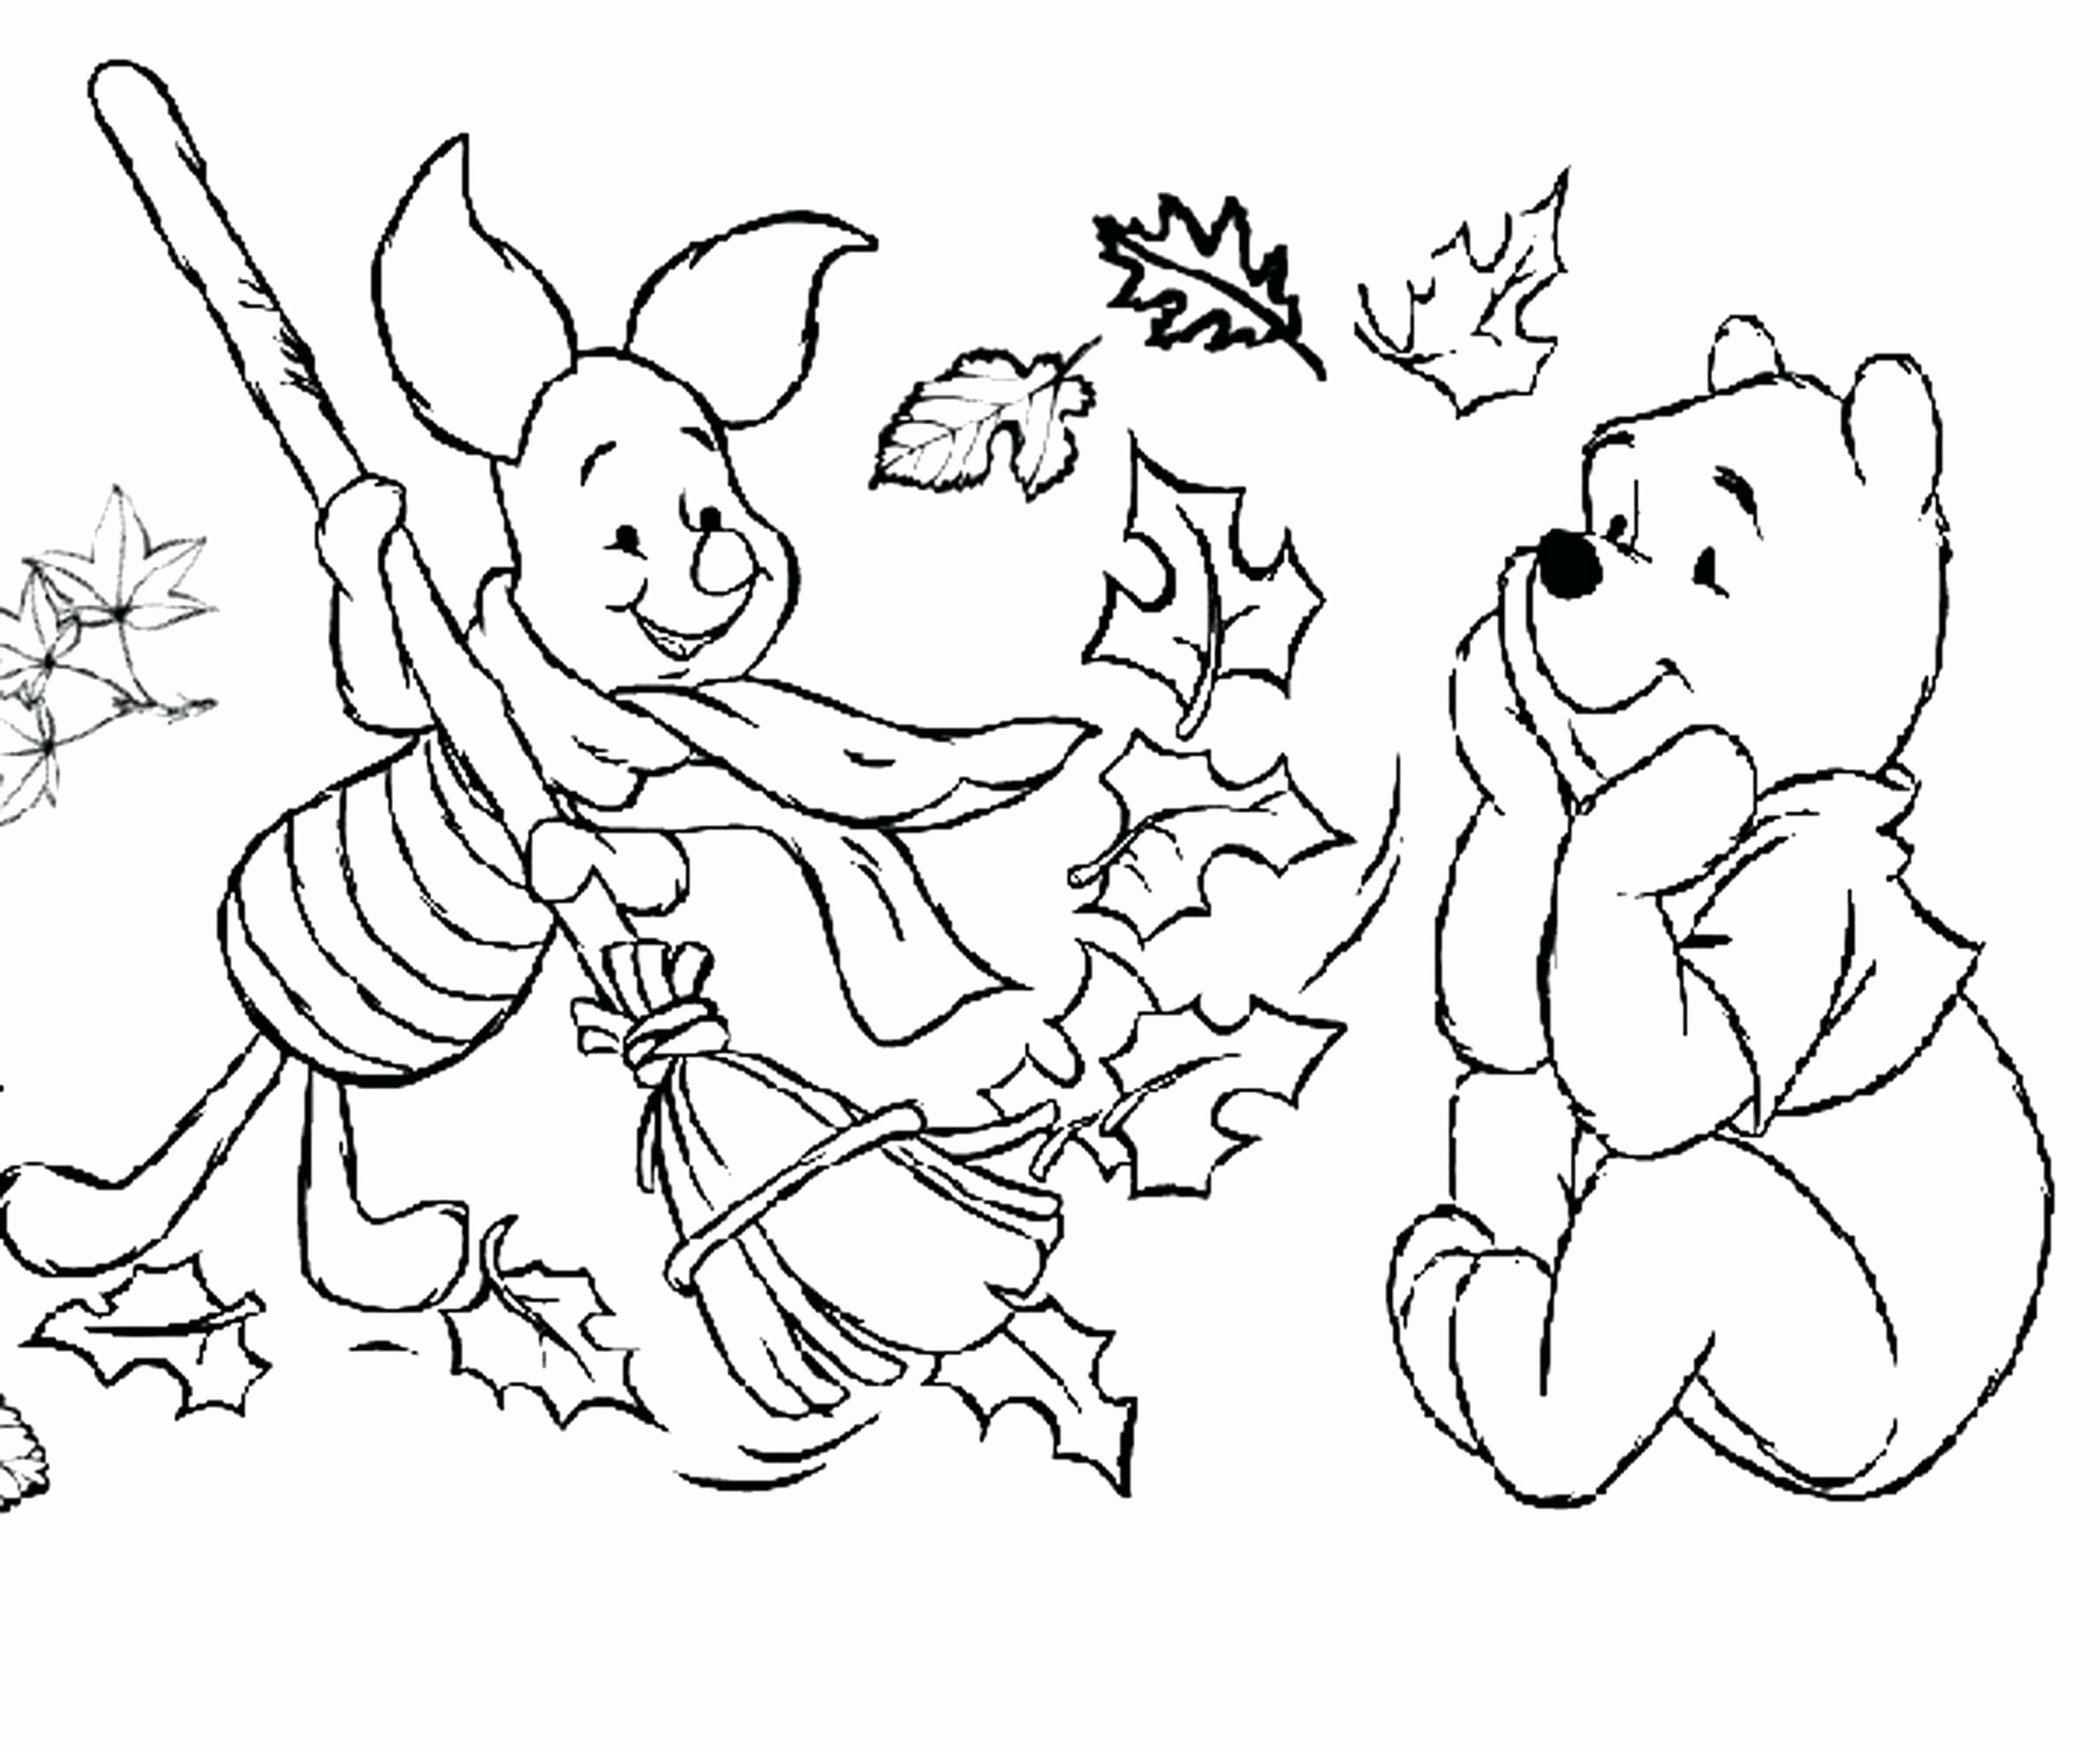 Agriculture Coloring Pages  to Print 20j - To print for your project